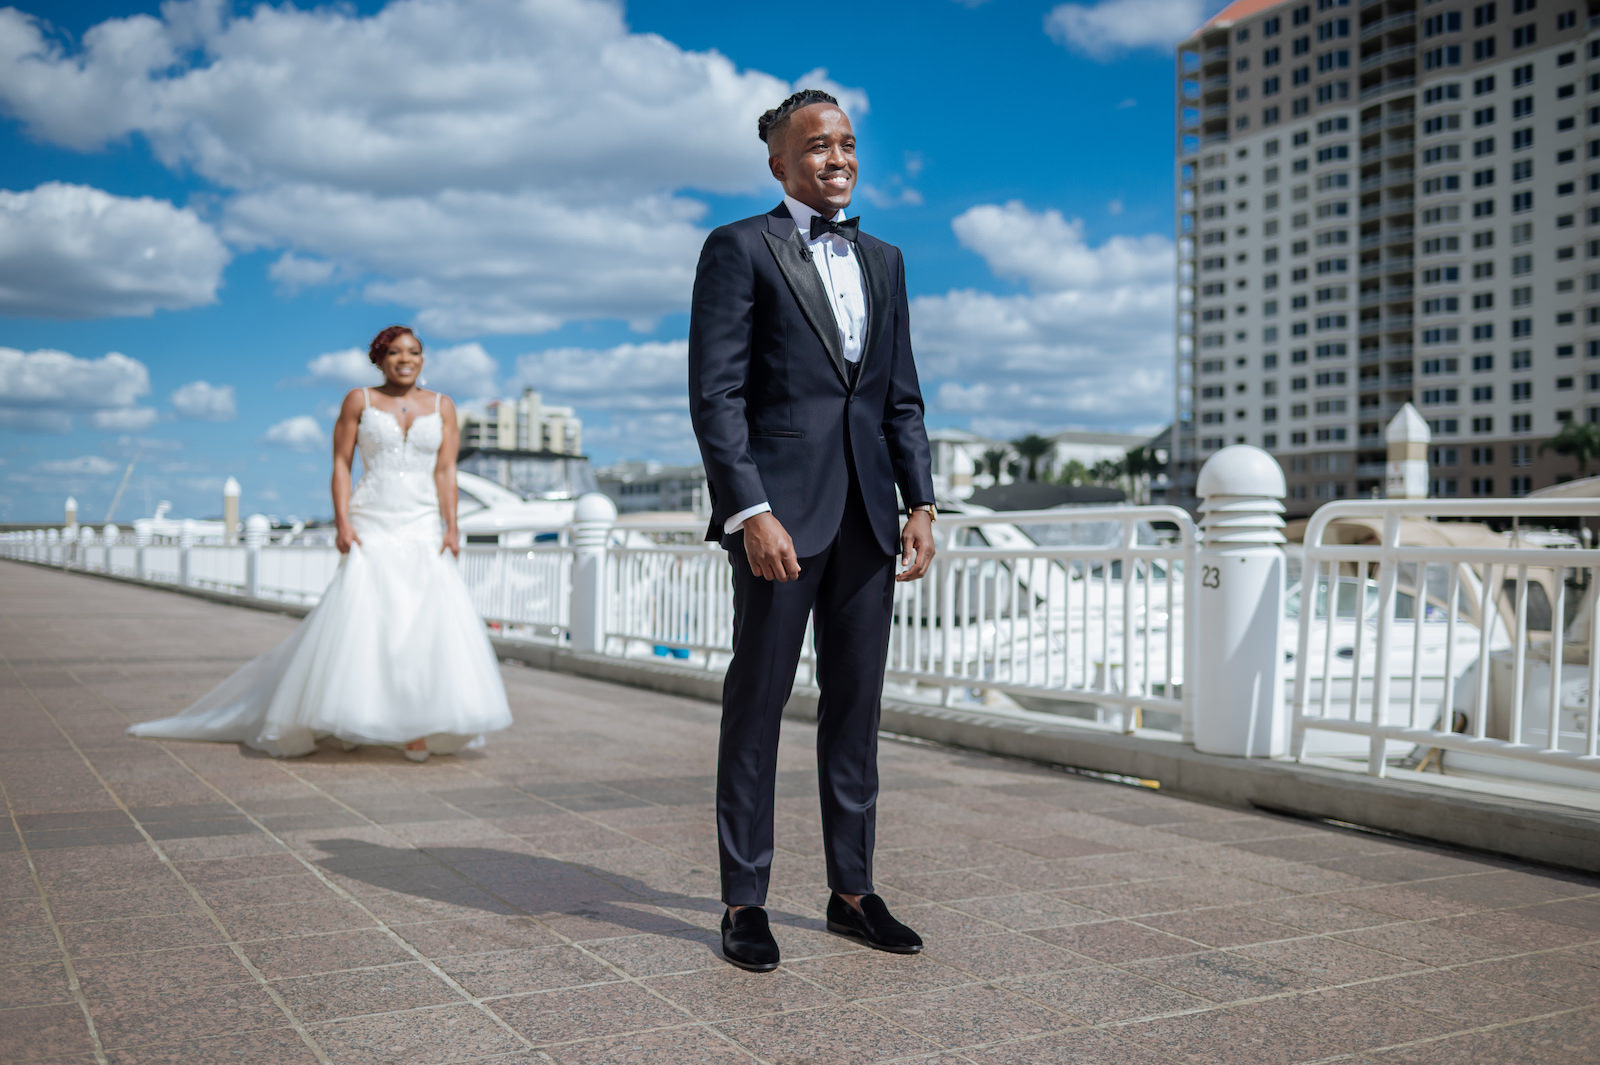 Bride and Groom Outdoor First Look along Marina in Downtown Tampa Channelside   Groom in Modern Navy Suit with Black Satin Lapel and Bow Tie